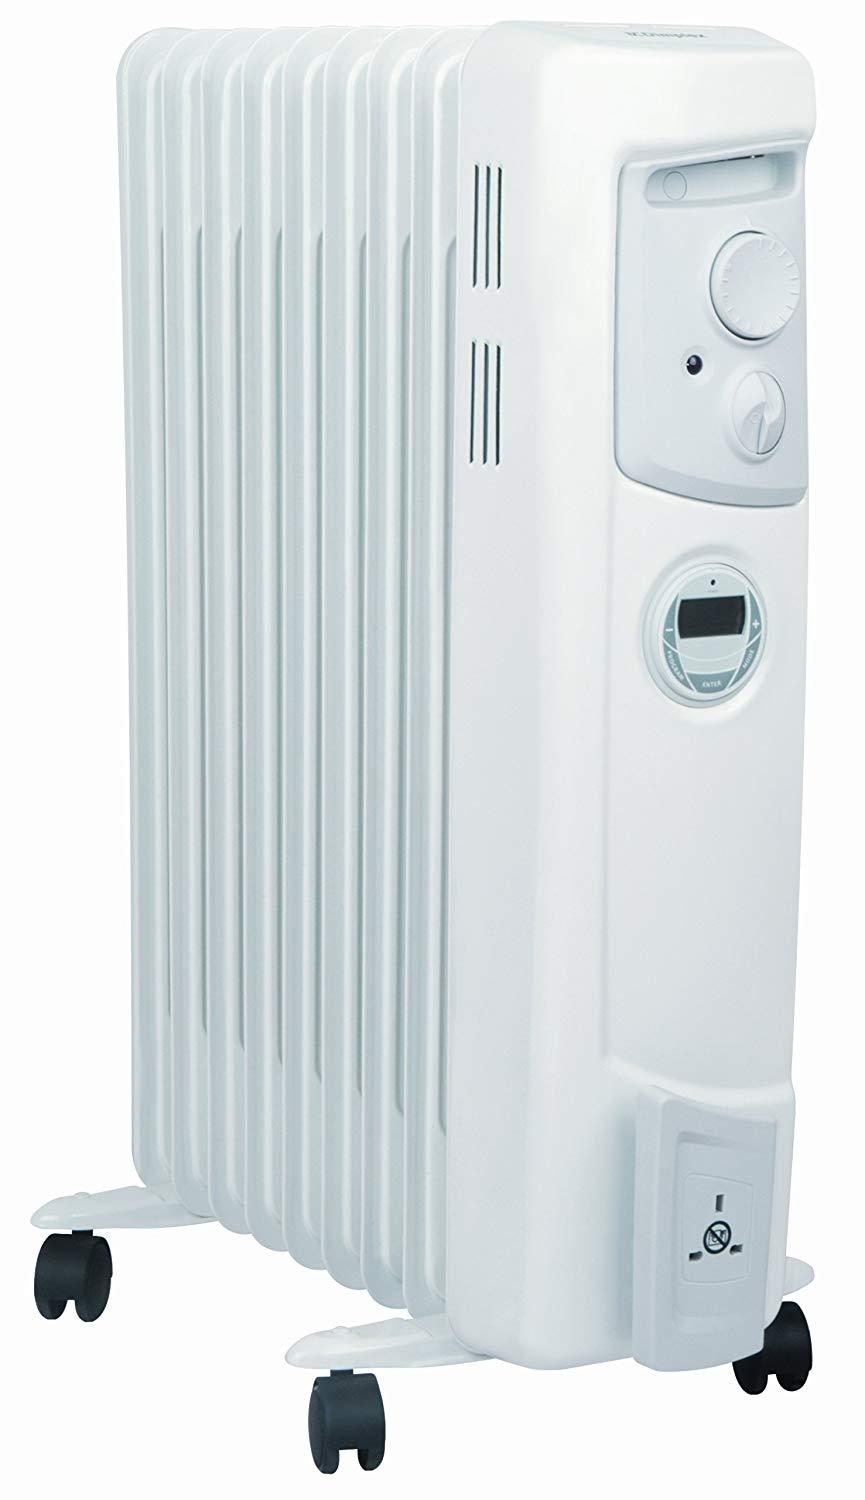 Deal of the Day: Dimplex 2 KW OFC2000Ti Electric Oil Filled Radiator Heater with Timer